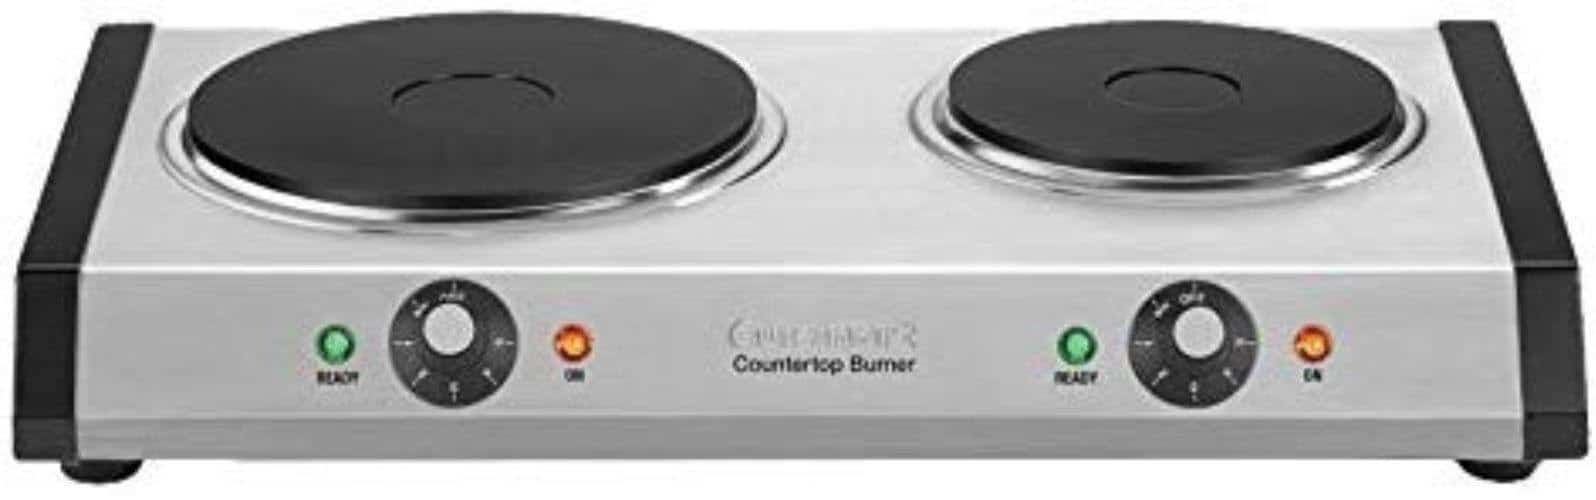 Cuisinart CB-60P1 Cast-Iron Double Burner